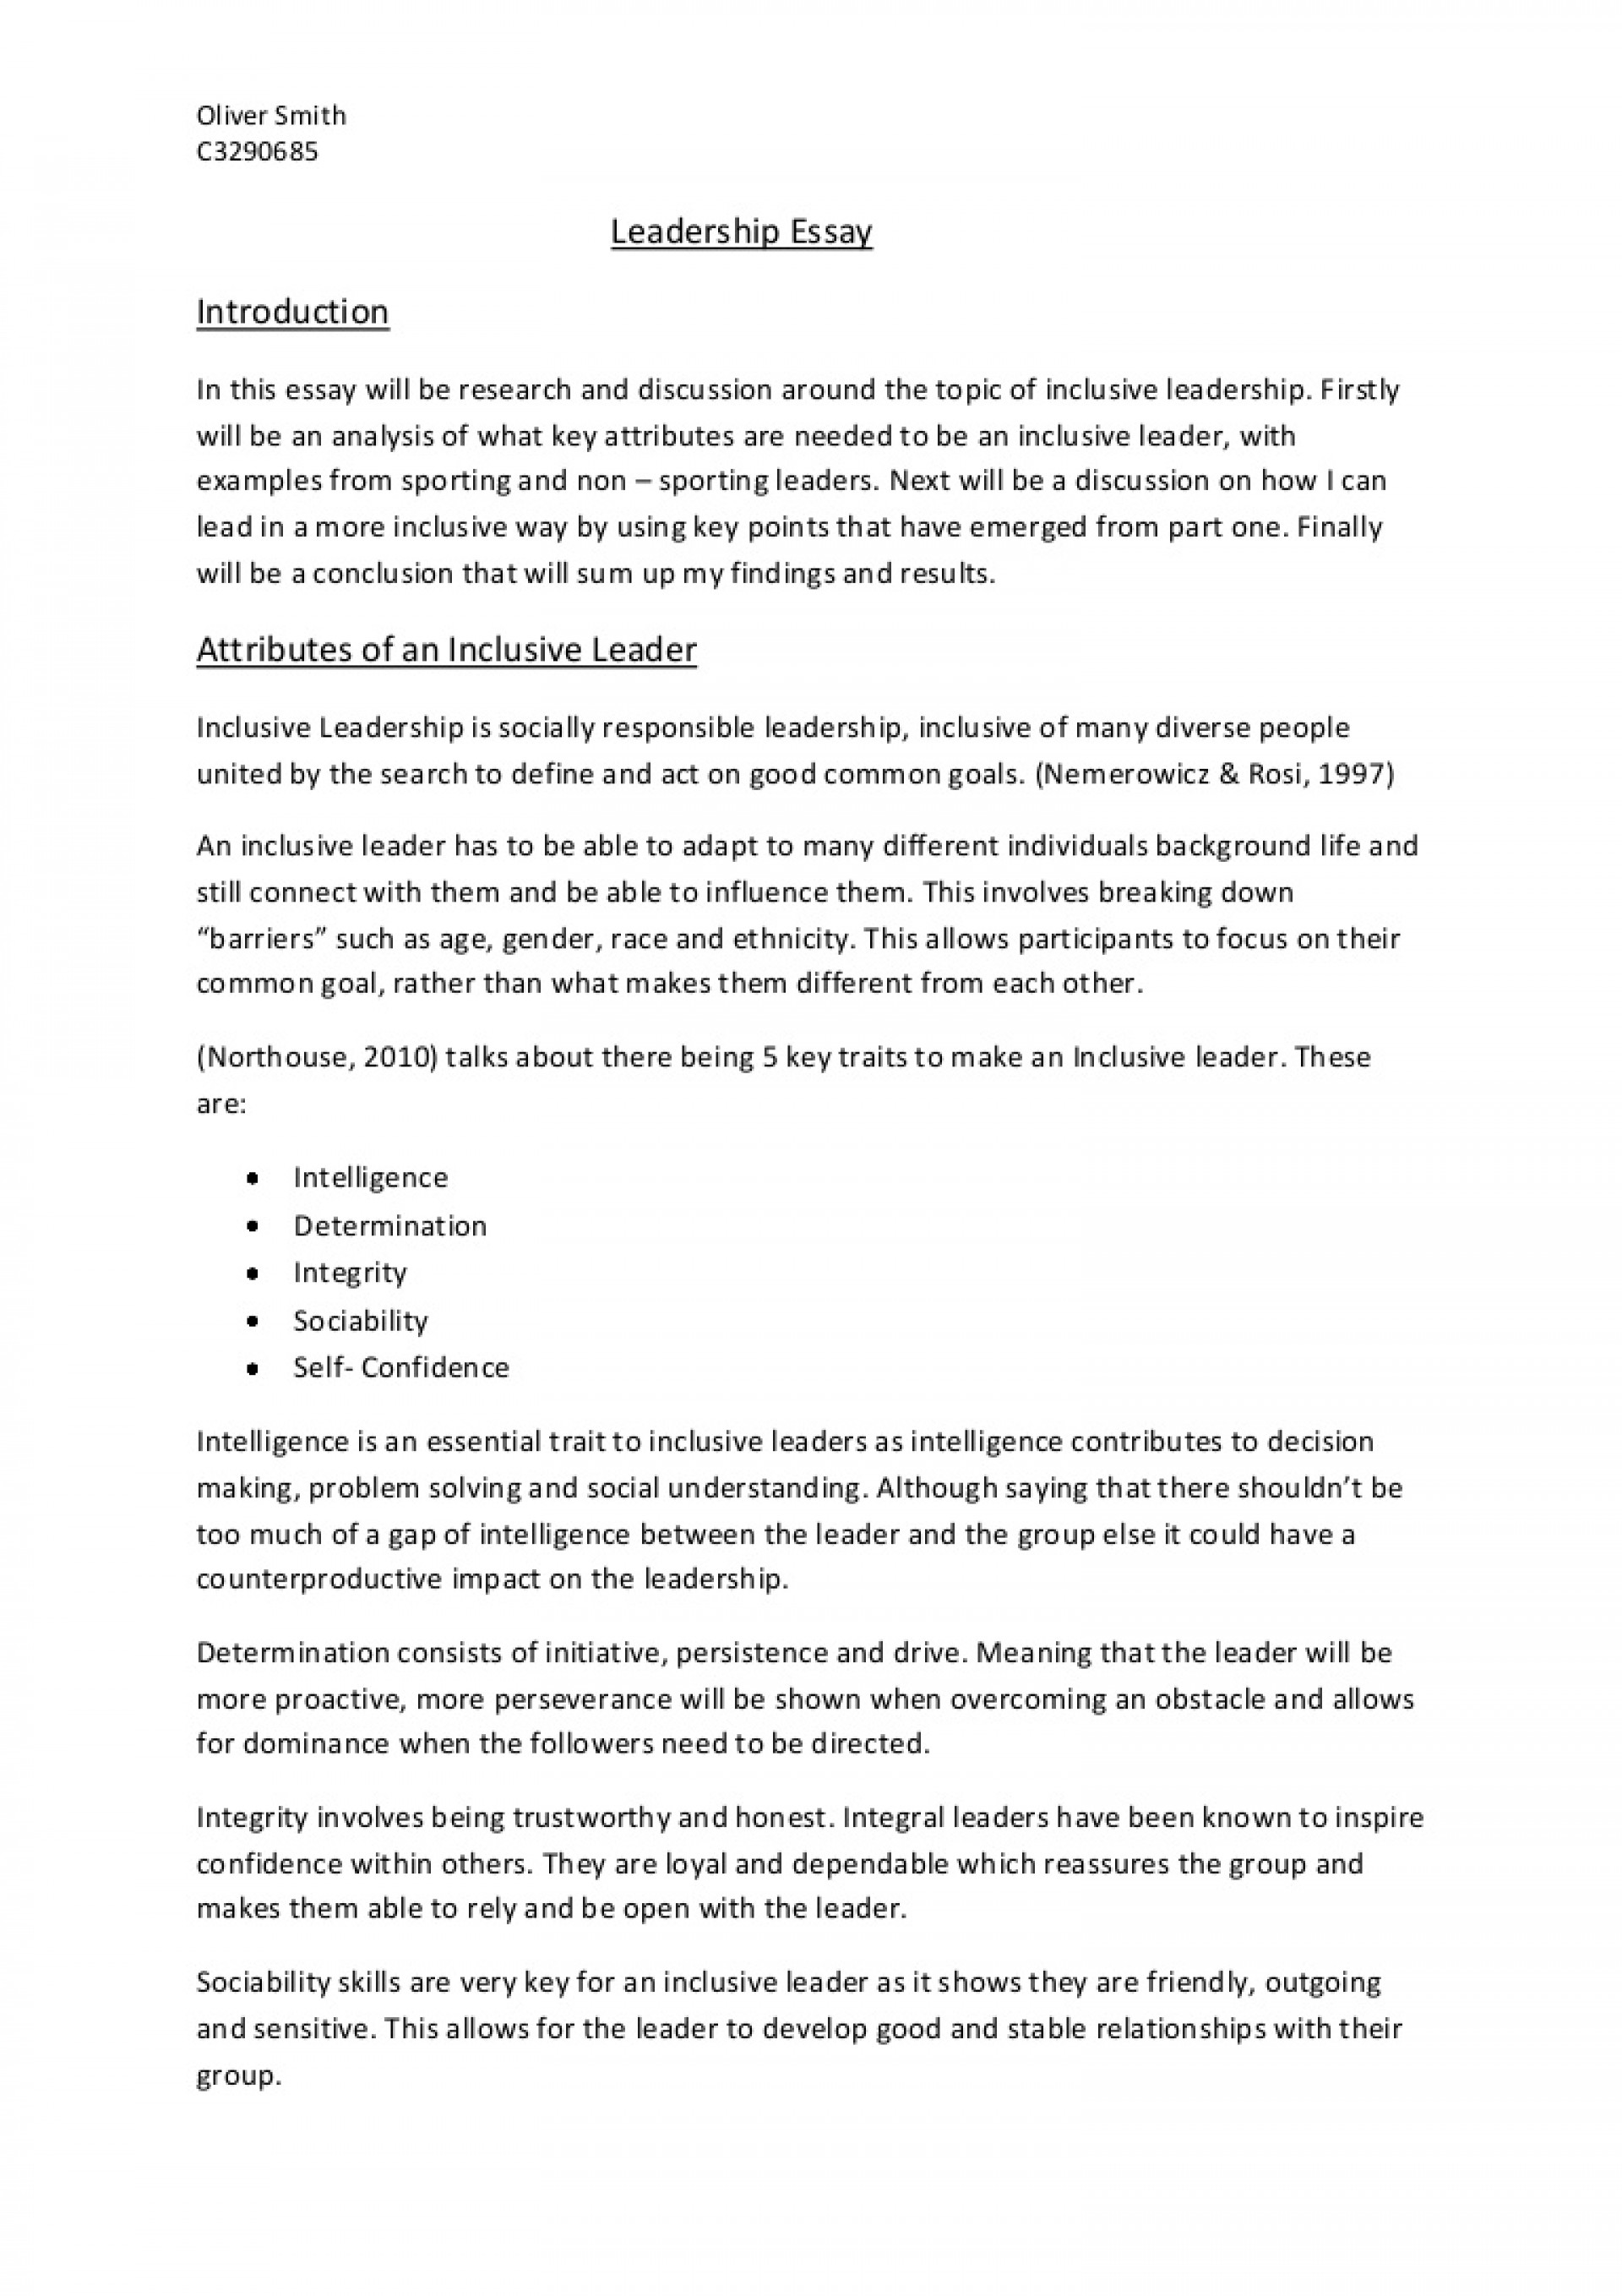 001 What Is Leadership Essay Leadershipessay Phpapp01 Thumbnail Excellent Military Example Makes A Good Leader Pdf 1920